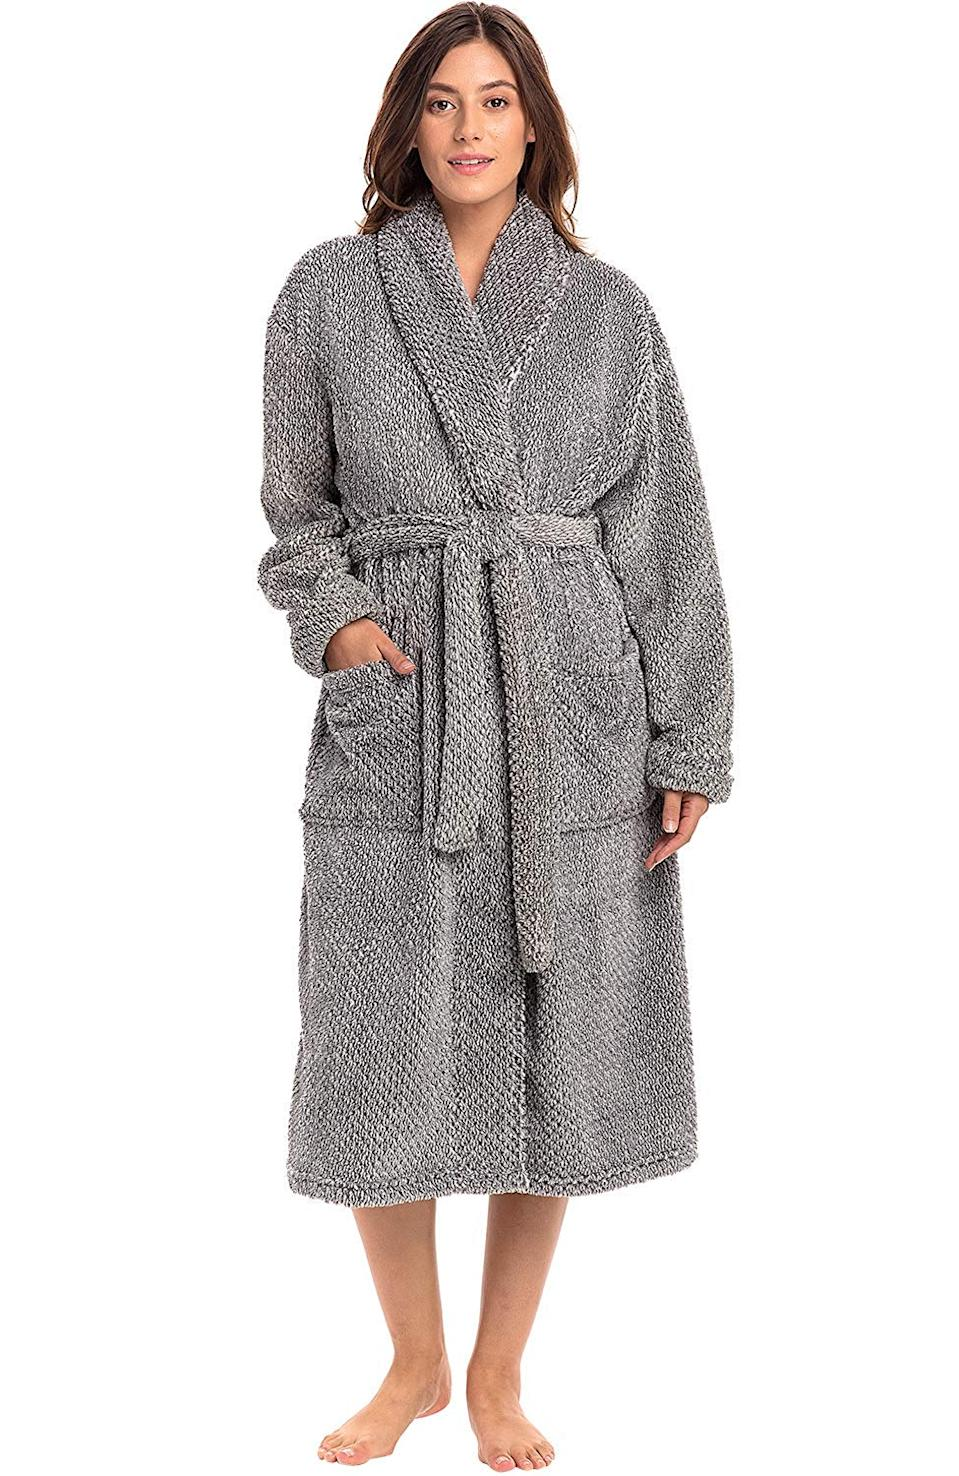 """<h3><a href=""""https://amzn.to/32ZCO9Z"""" rel=""""nofollow noopener"""" target=""""_blank"""" data-ylk=""""slk:Alexander Del Rossa Plush Fleece Robe"""" class=""""link rapid-noclick-resp"""">Alexander Del Rossa Plush Fleece Robe</a></h3><br>This bathrobe is like wearing a teddy bear (but, like a luxury-loving, spa-going teddy bear) — it's crafted from 270-GSM velveteen fleece that will not fail to keep her cozied-up at home.<br><br>One customer cooed: """"This is the most lightweight, warmest, softest robe I have ever owned."""" and """"GORGEOUS. Simply lush, plush, soft...can I get a bed made of this, please?"""" <br><br><br><strong>Alexander Del Rossa</strong> Plush Fleece Robe, $, available at <a href=""""https://amzn.to/2nZYPH3"""" rel=""""nofollow noopener"""" target=""""_blank"""" data-ylk=""""slk:Amazon"""" class=""""link rapid-noclick-resp"""">Amazon</a>"""